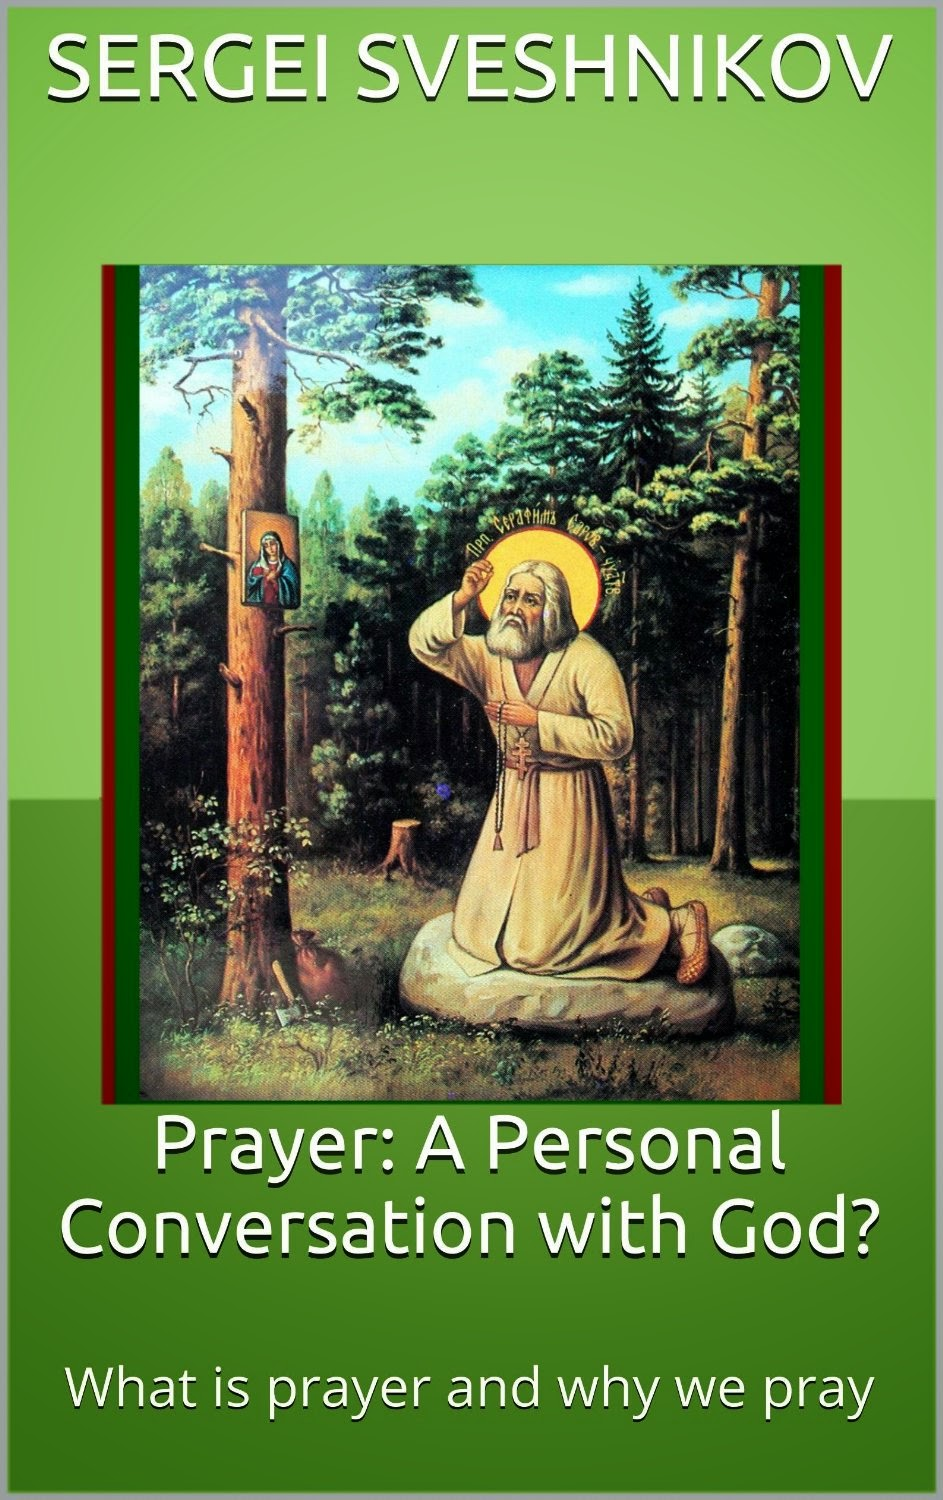 http://frsergei.wordpress.com/2014/05/05/prayer-a-personal-conversation-with-god/